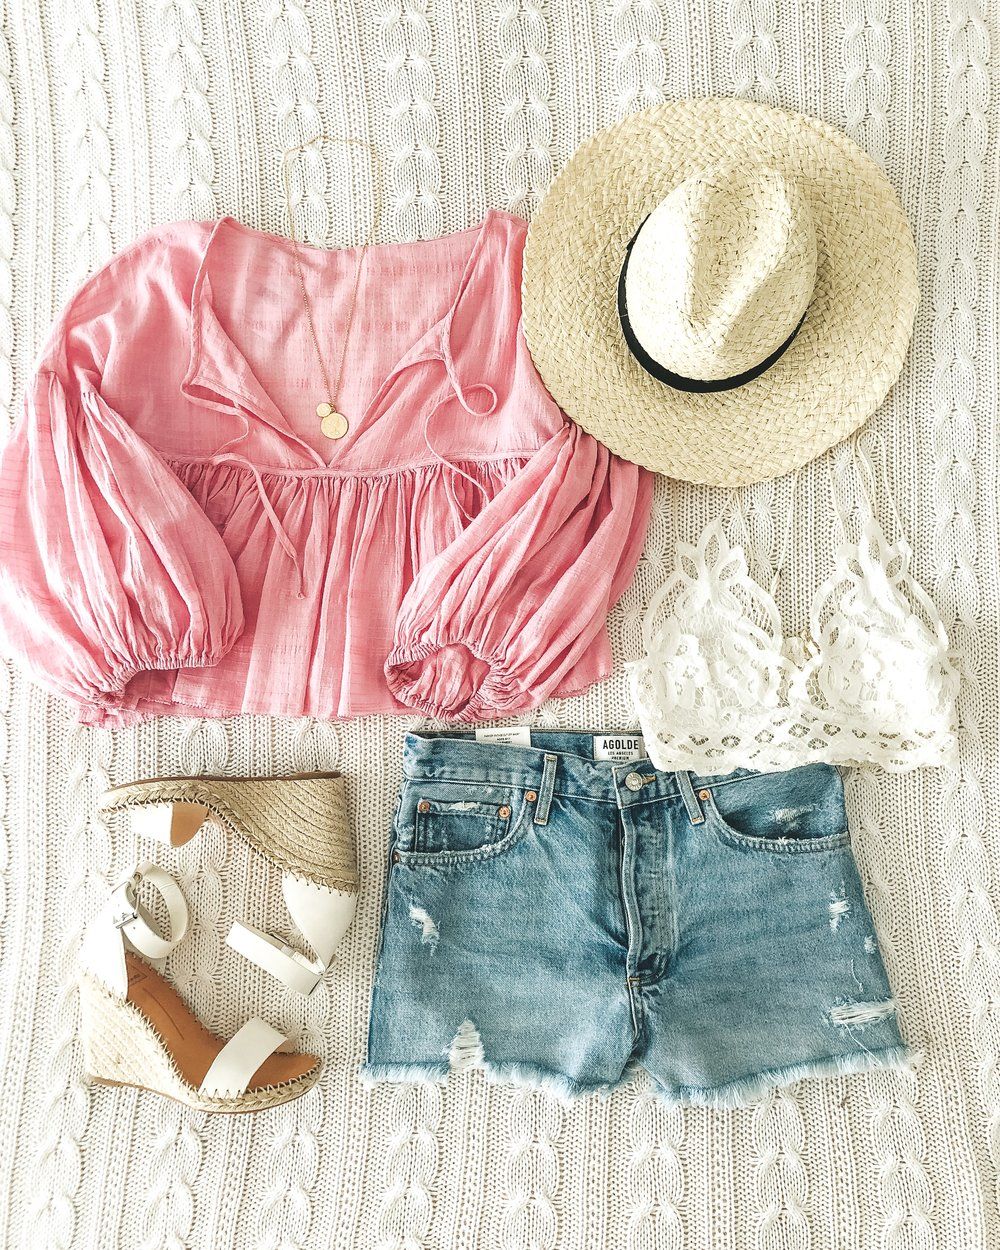 free people beaumont mews top, agolde parker jean shorts. cute summer outfit.  dolce vita noor sandals.